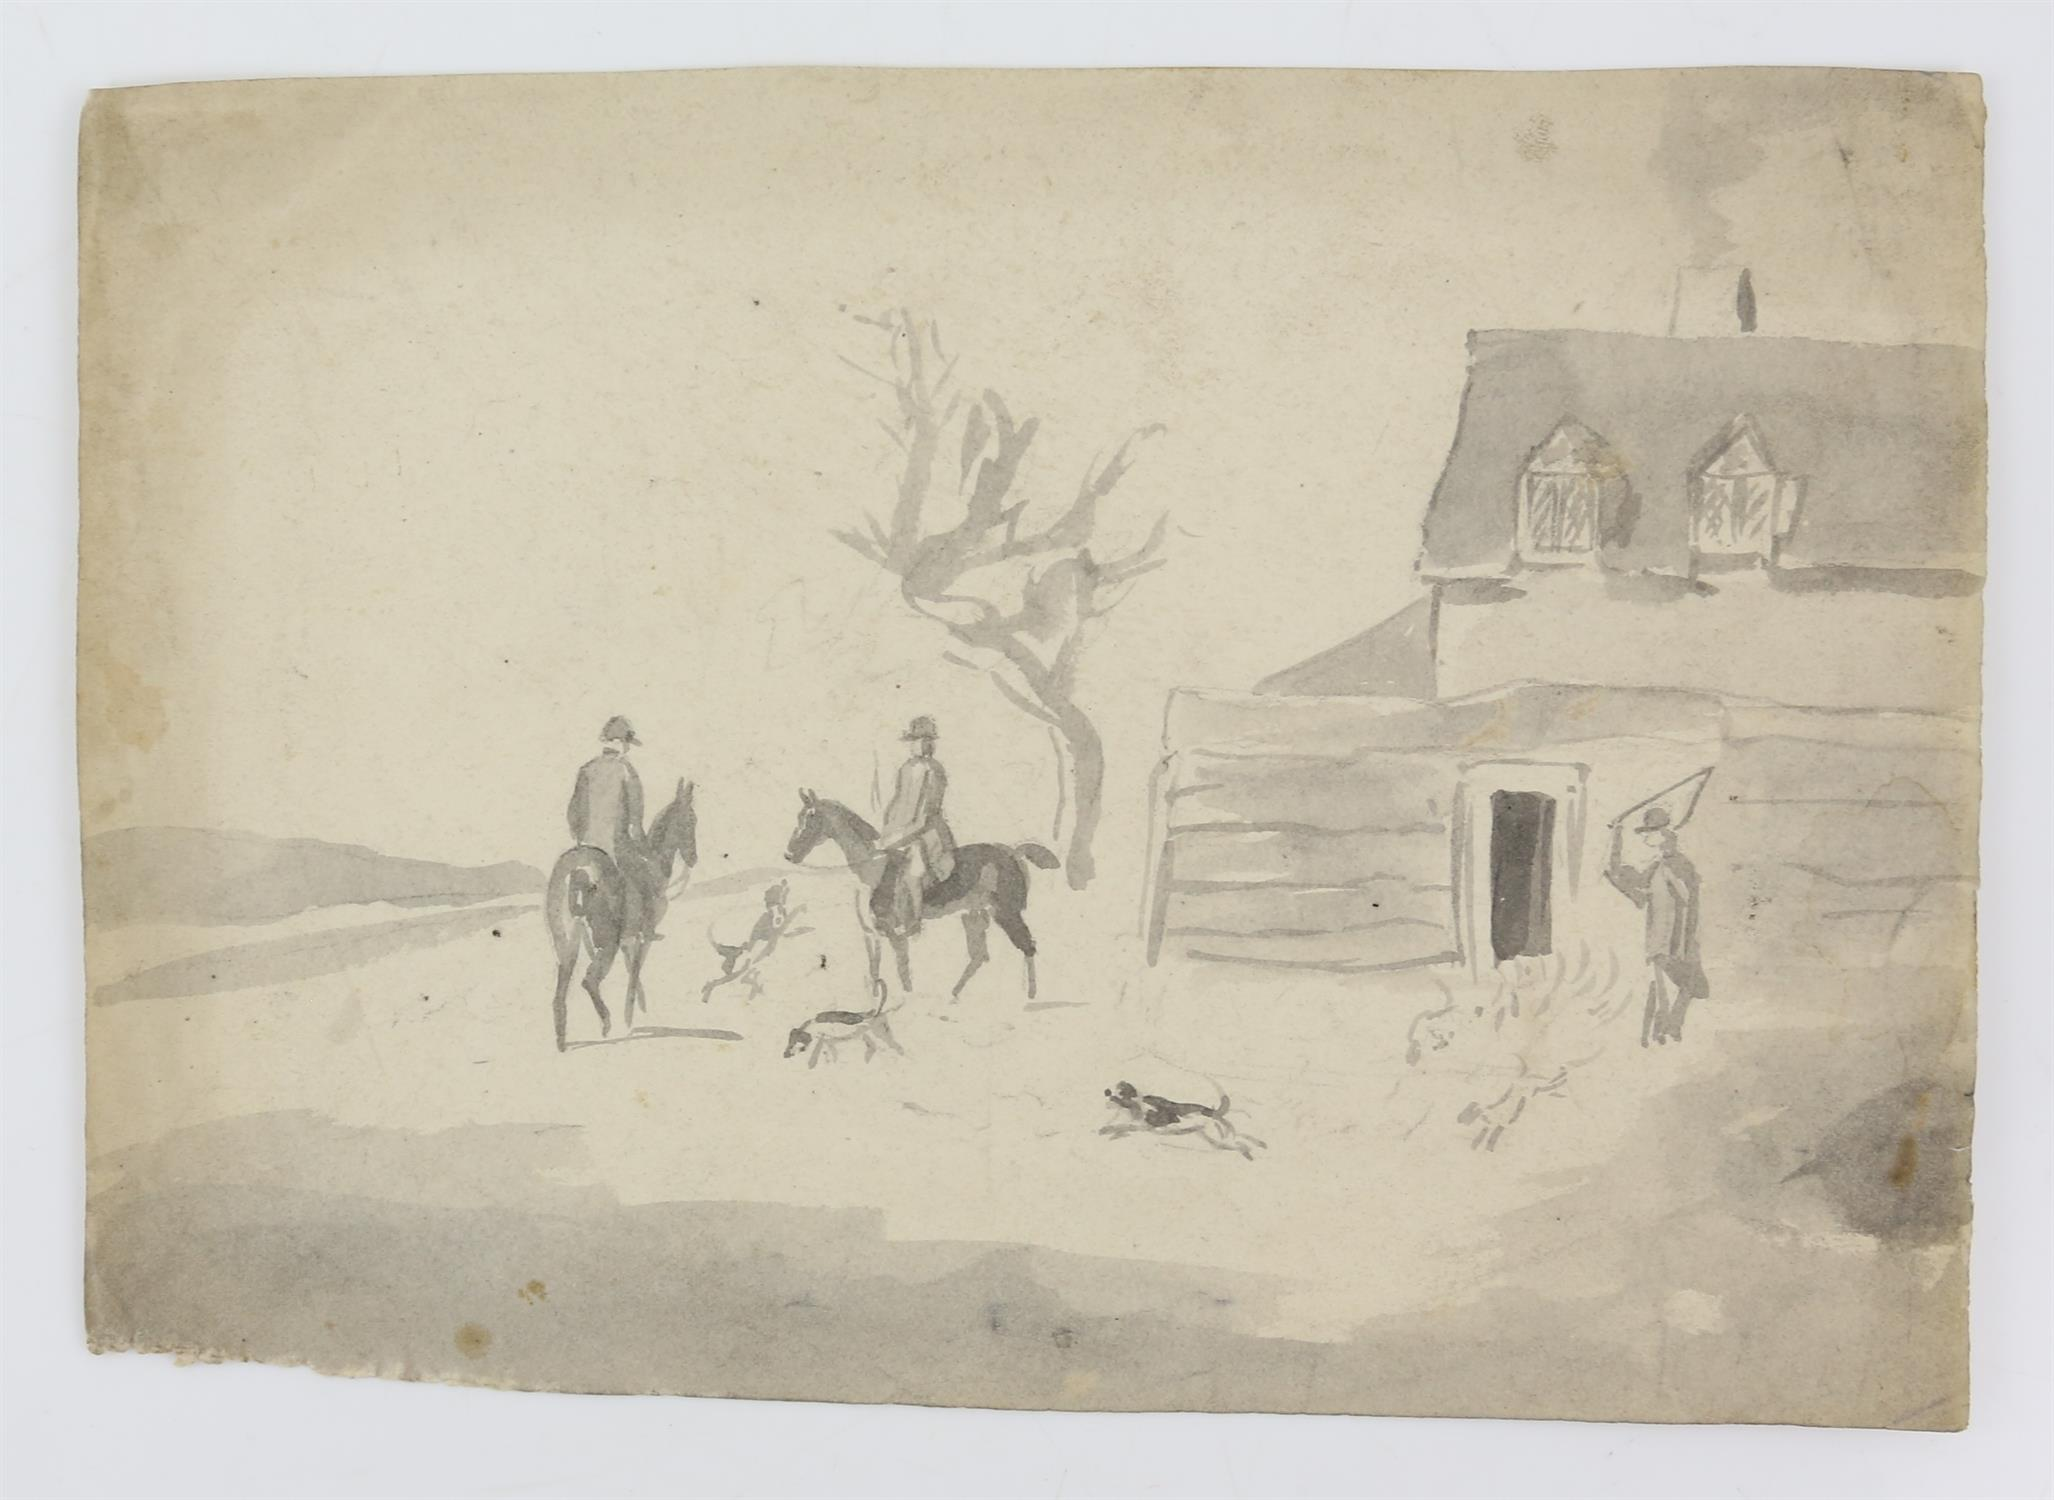 19th century scene with a castle and figures before the moat, sepia wash, 9.5cm x 15. - Image 5 of 8